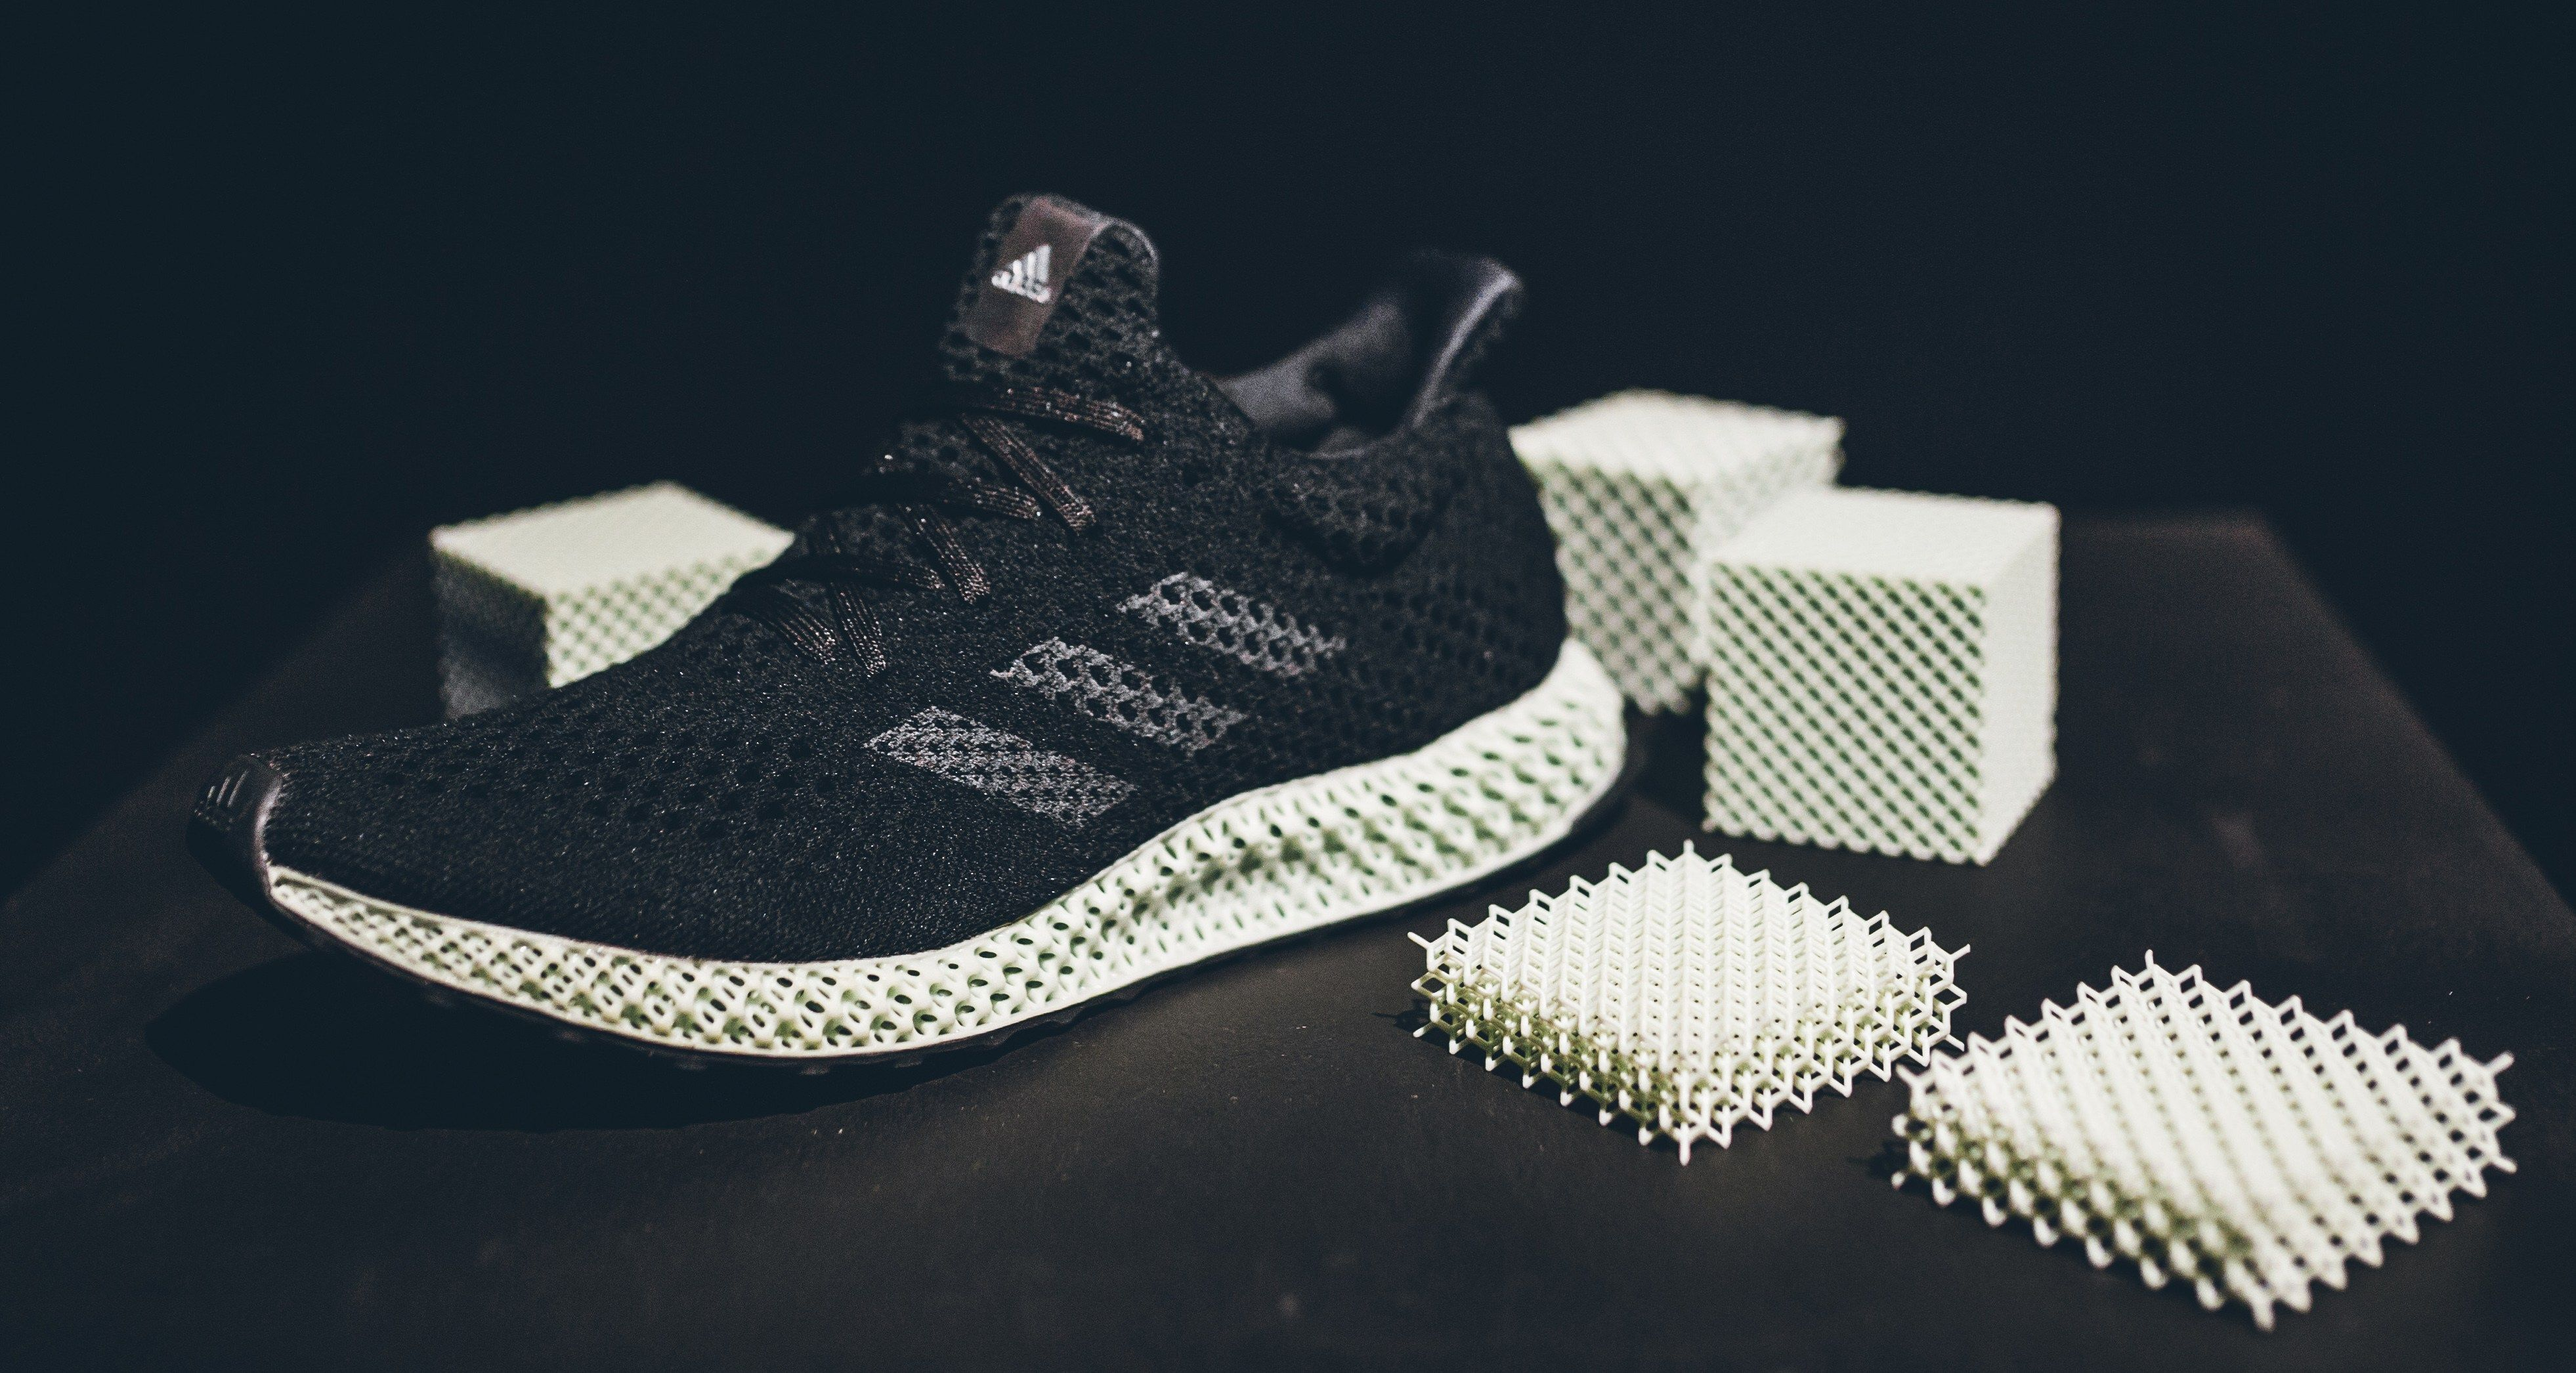 2b08eee1577 Inside the adidas Futurecraft 4D NYC Launch Event